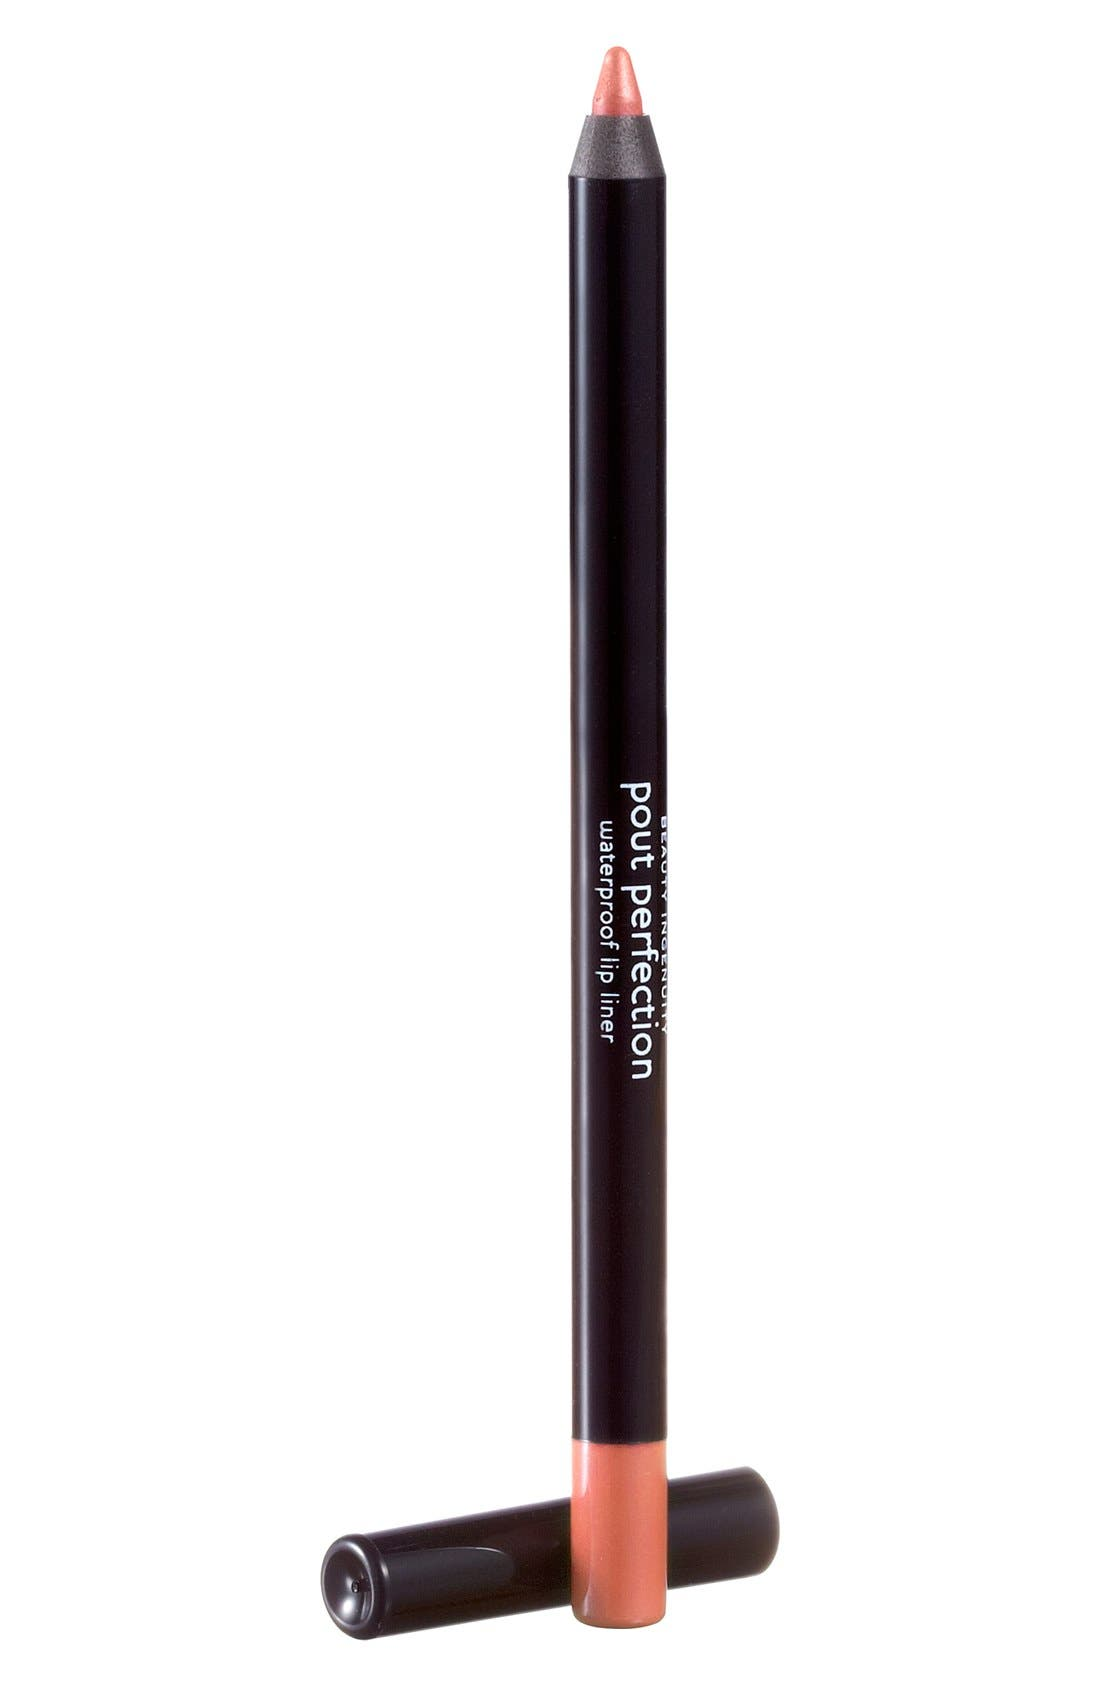 'Pout Perfection' Waterproof Lip Liner,                         Main,                         color, BLOSSOM